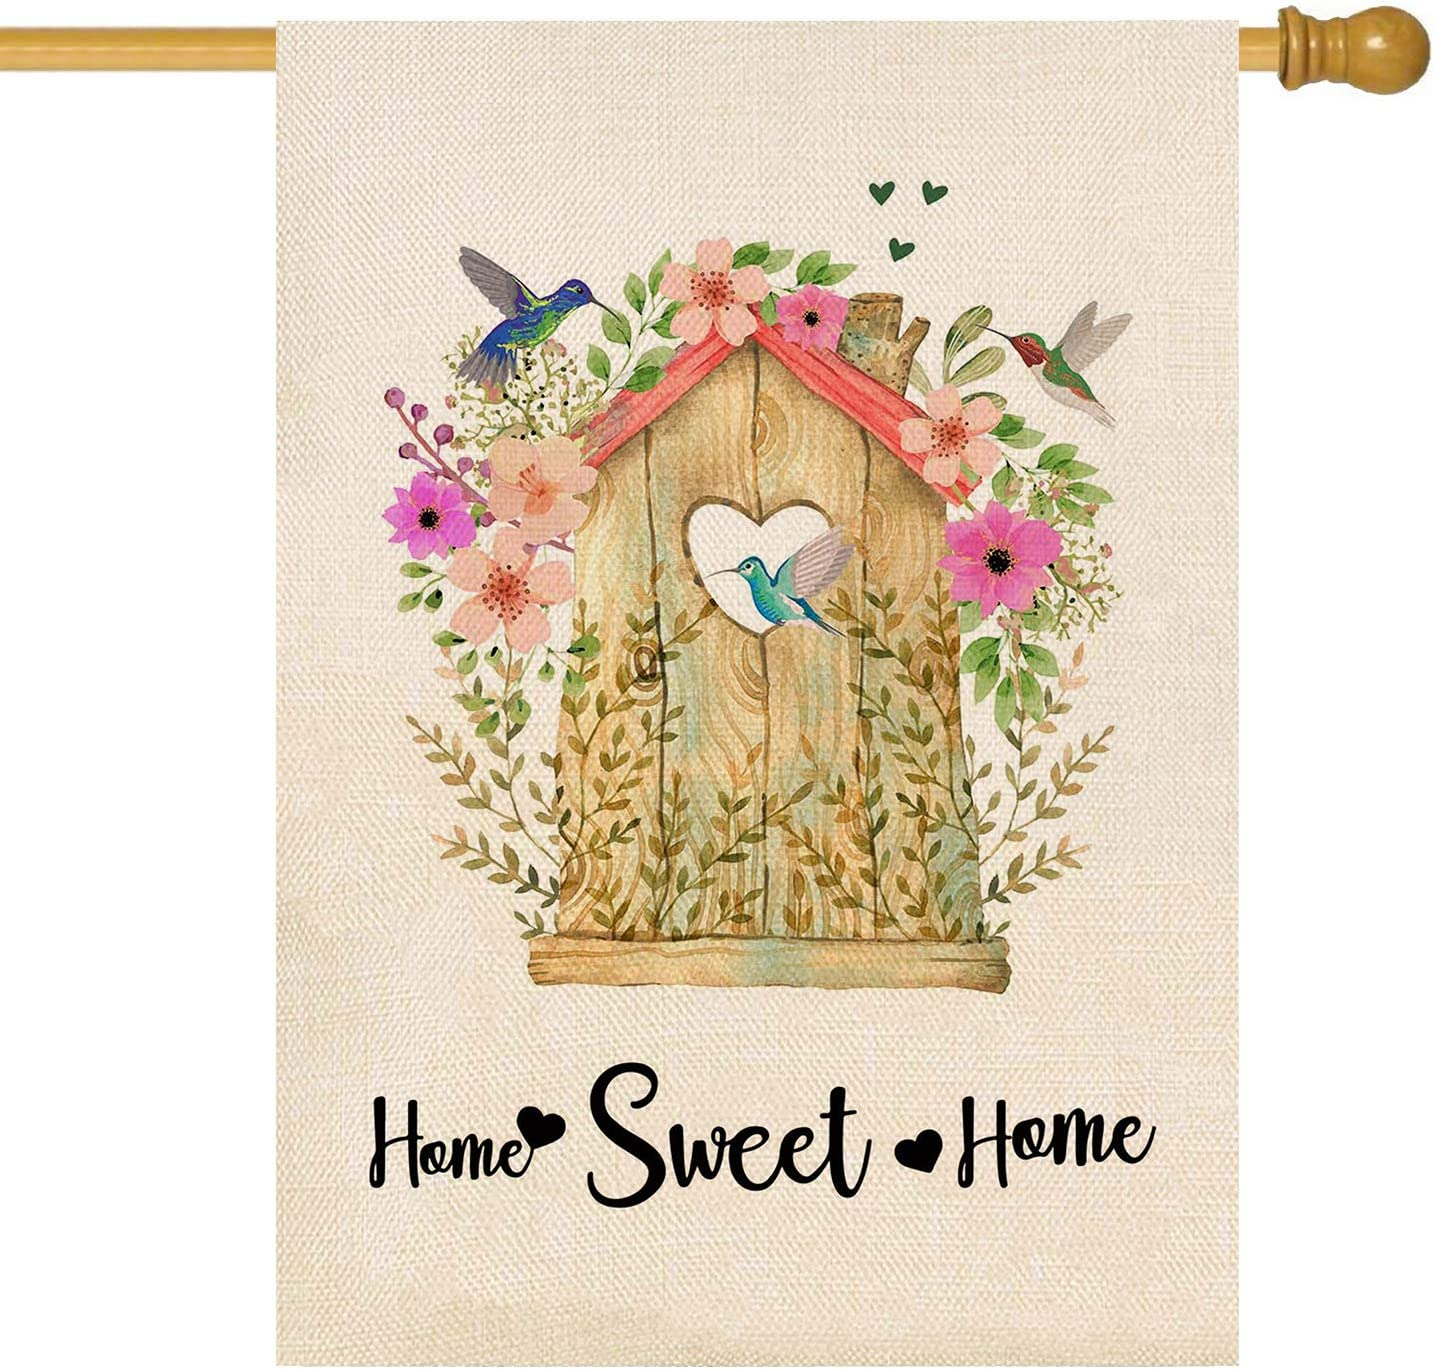 ORTIGIA Small Home Sweet Home Garden House Flag Vertical Double Sided,Burlap Wooden Houses and Hummingbirds Yard Flag Flower Home Decor Spring and Summer Welcome Outdoor Decoration 28x40 inch